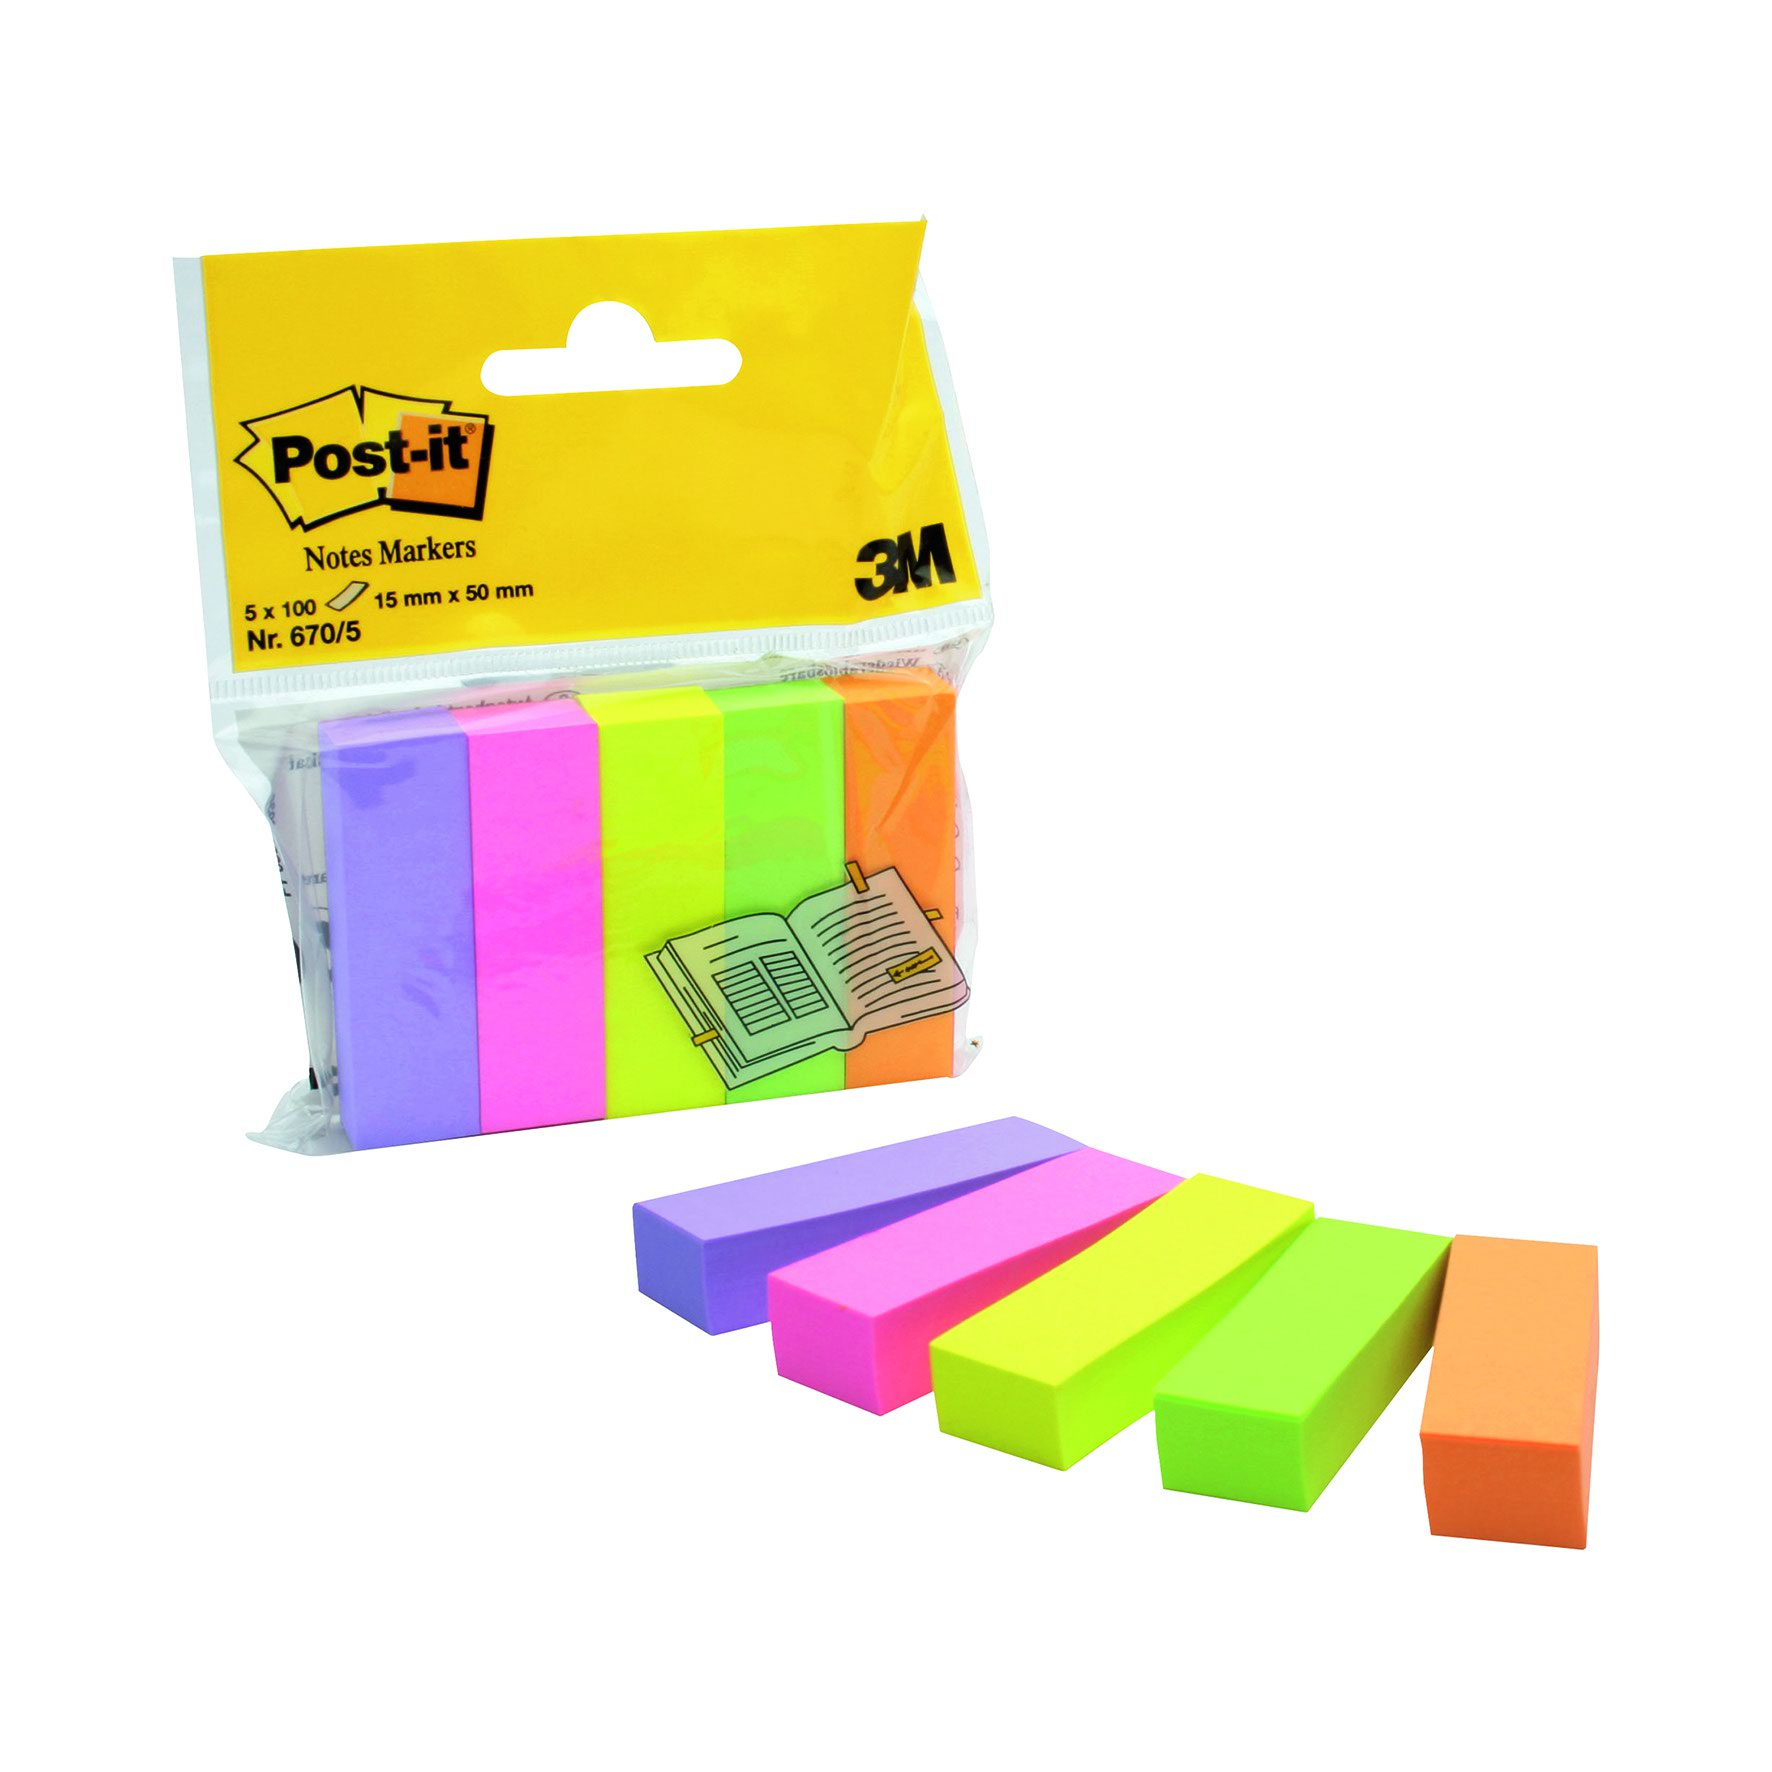 Image for 3M Post-it Page Markers 15x50mm Assorted Pastel/Neon (500) 670-5